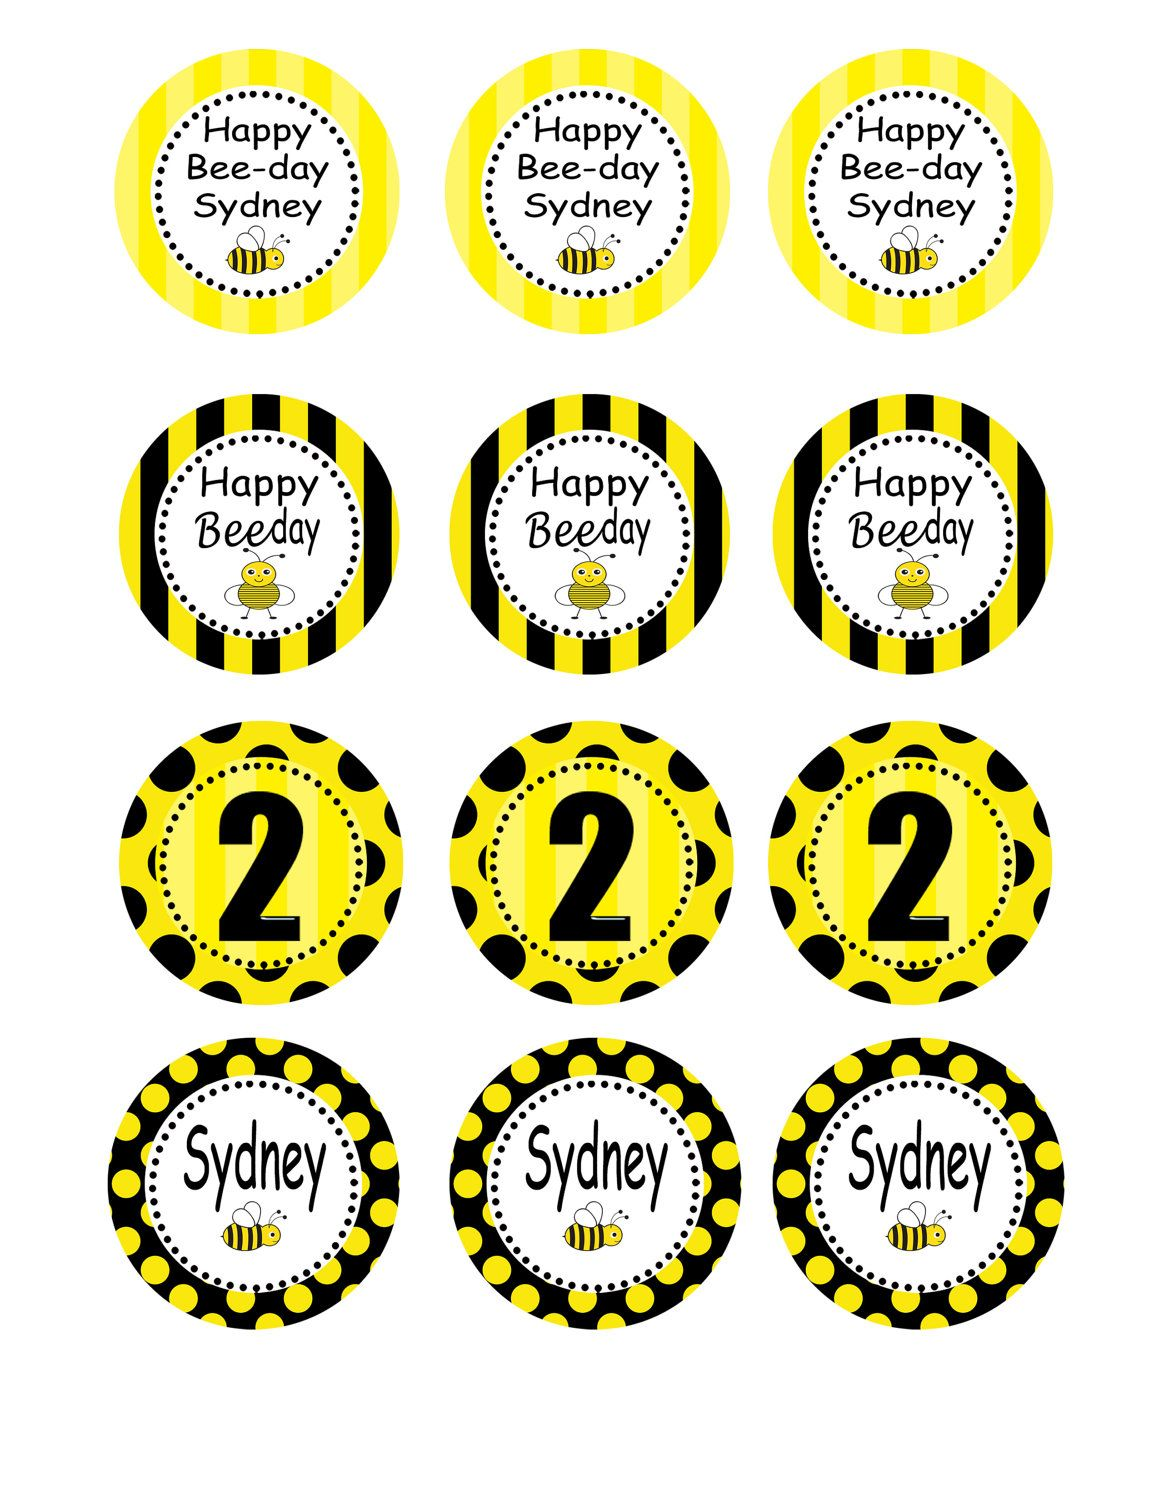 Bumble Bee Baby Birthdy Party Diy Printable Circles 8 00 Via Etsy